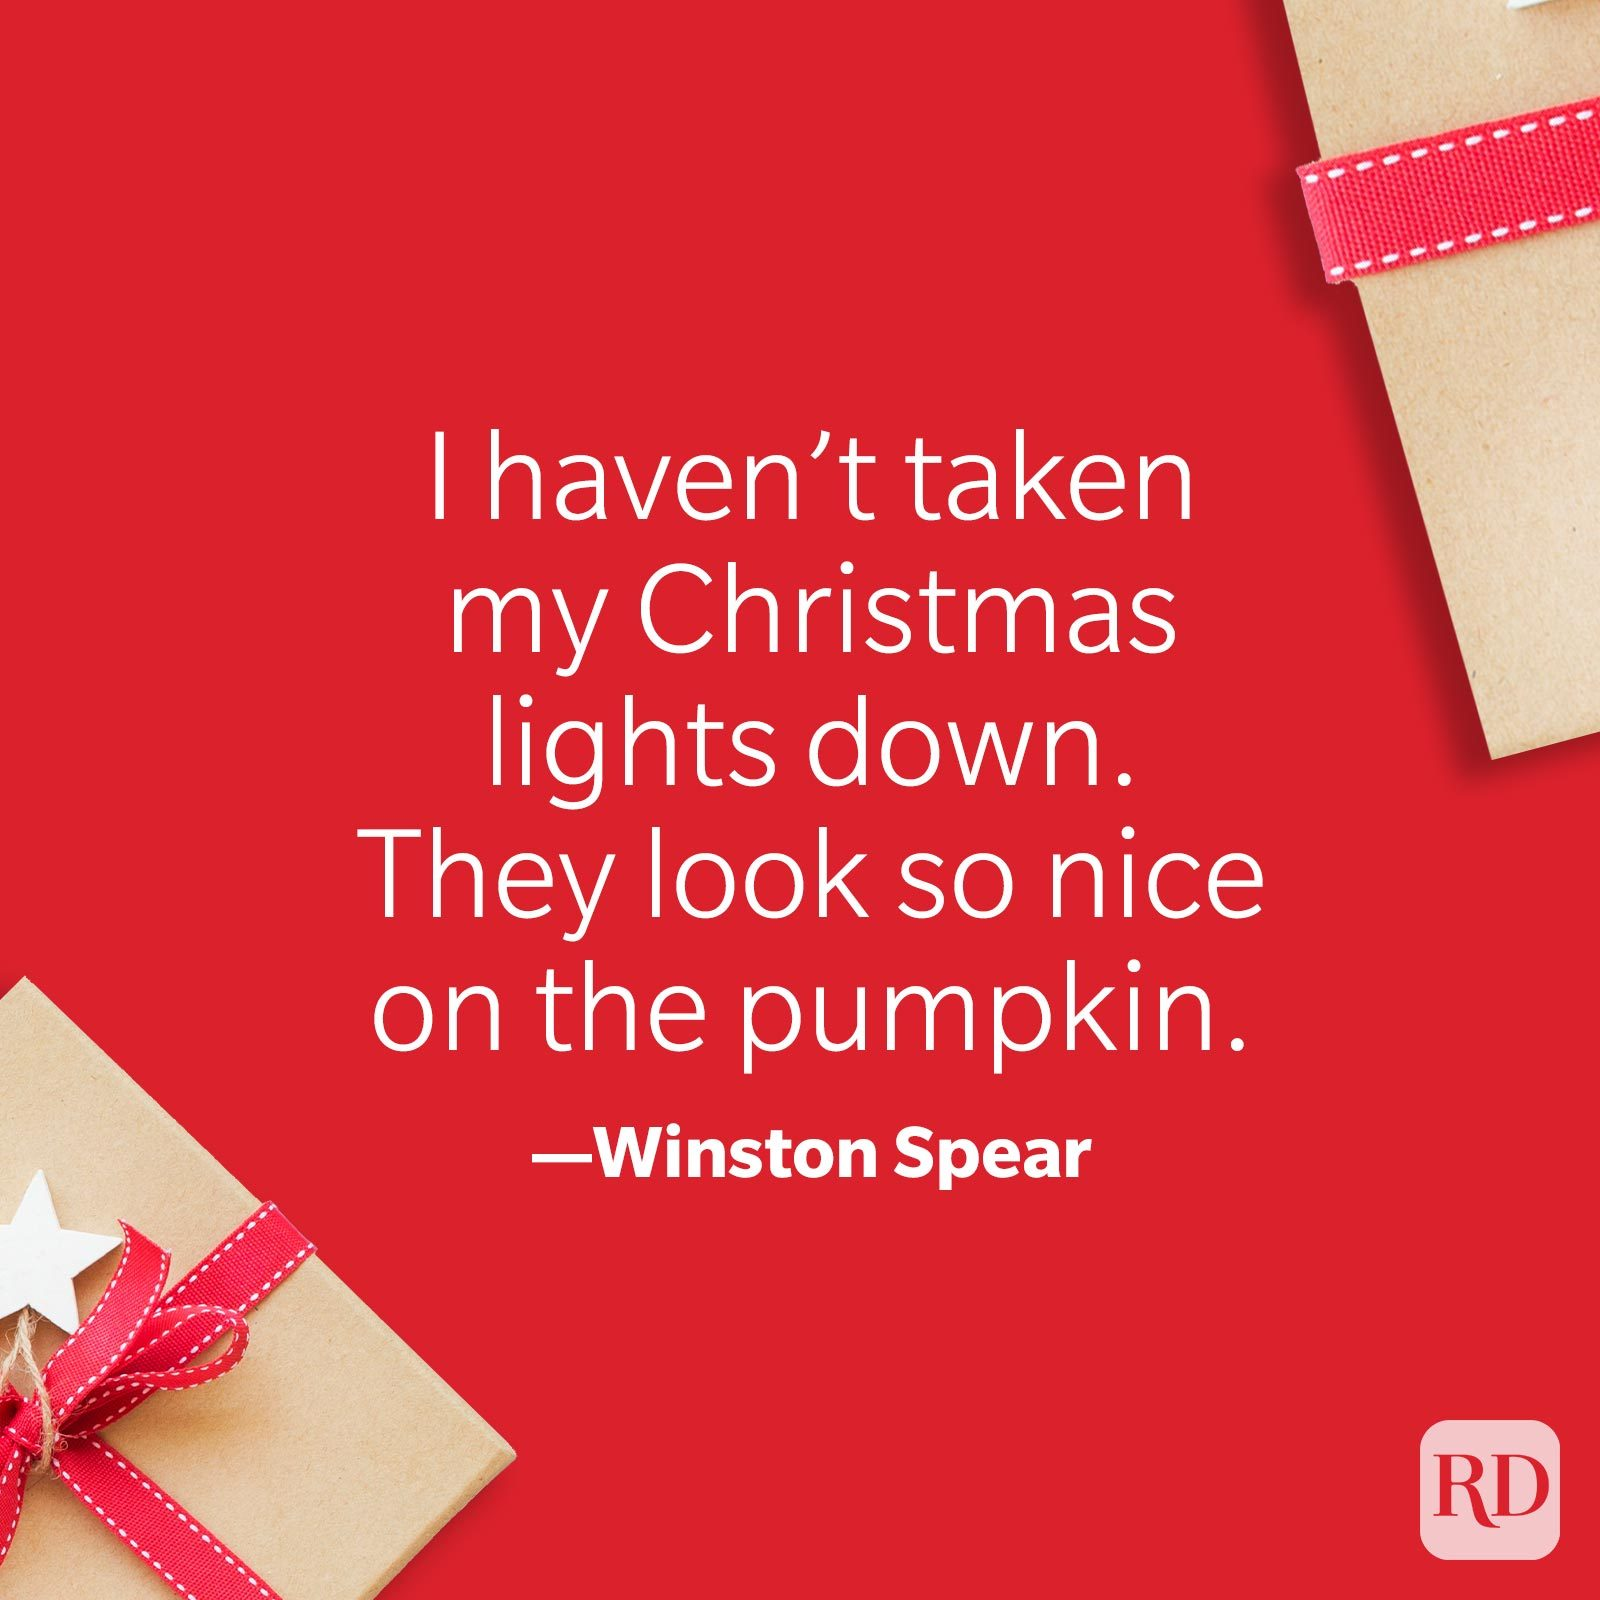 Funny Christmas quote